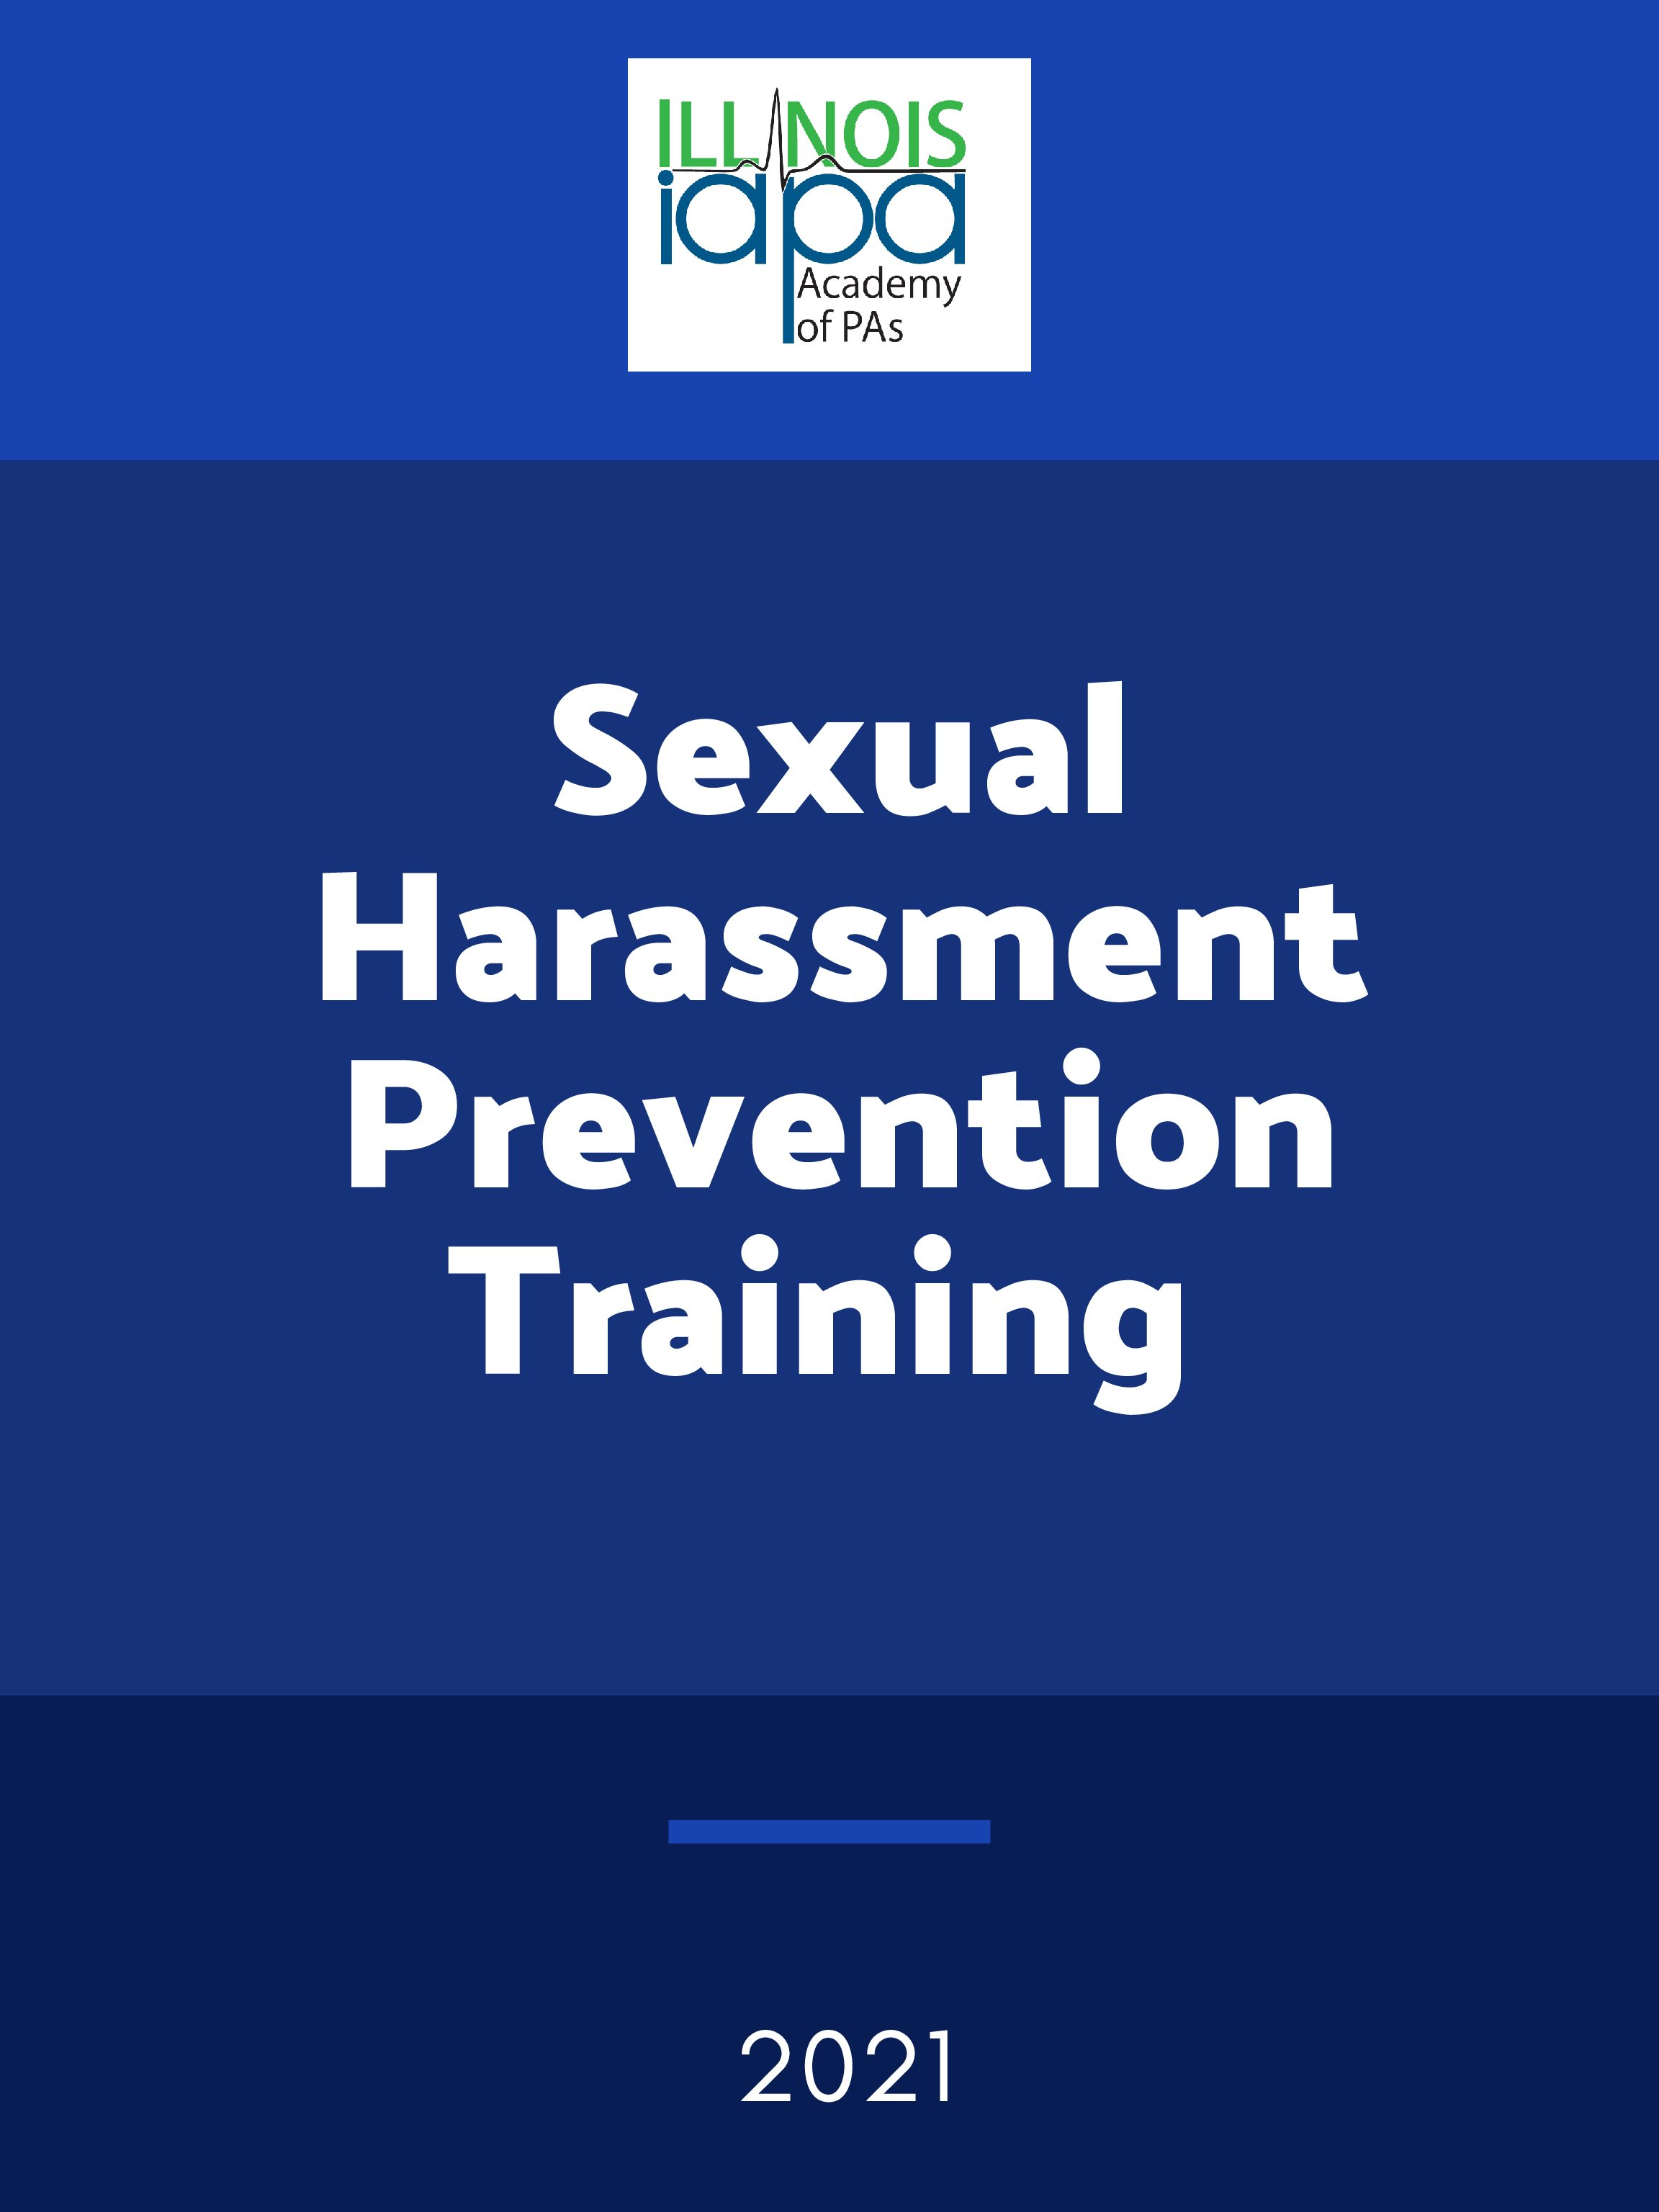 2021 Sexual Harassment Prevention Training – Click Here to Register!